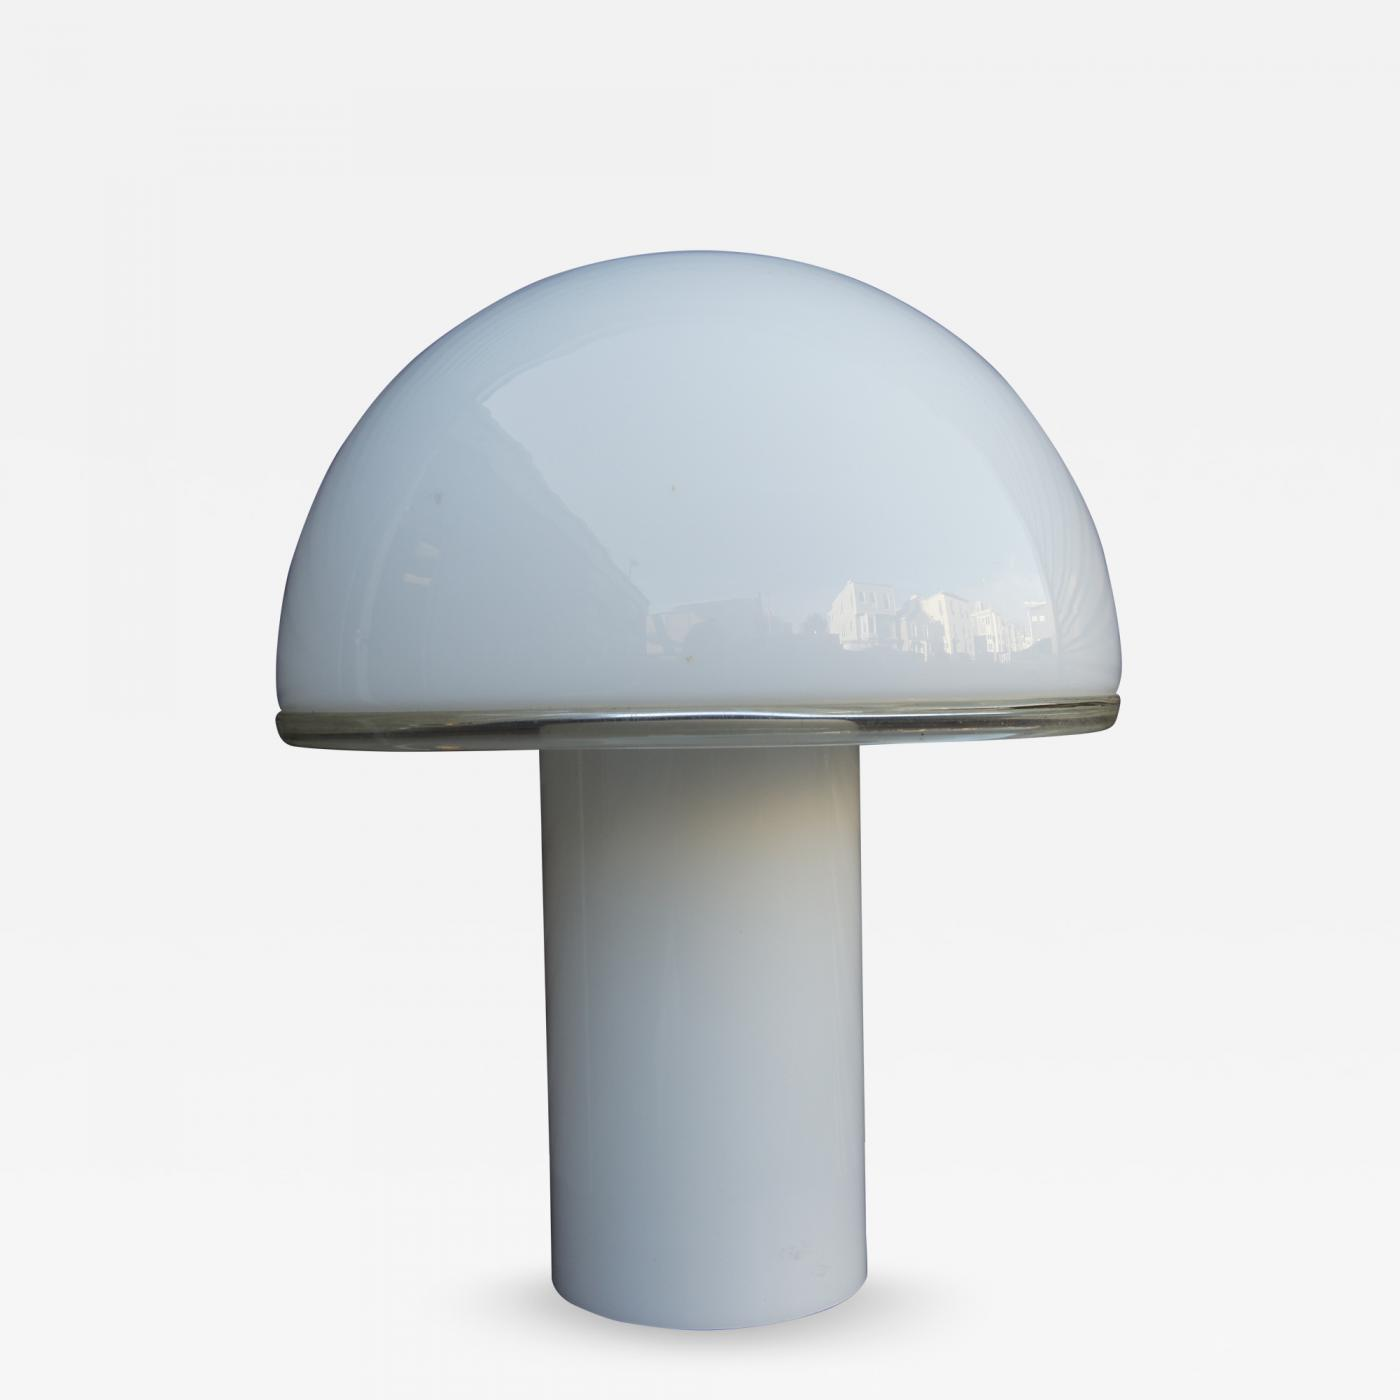 Onfale Tavolo Grande Table Lamp By Luciano Vistosi For Artemide